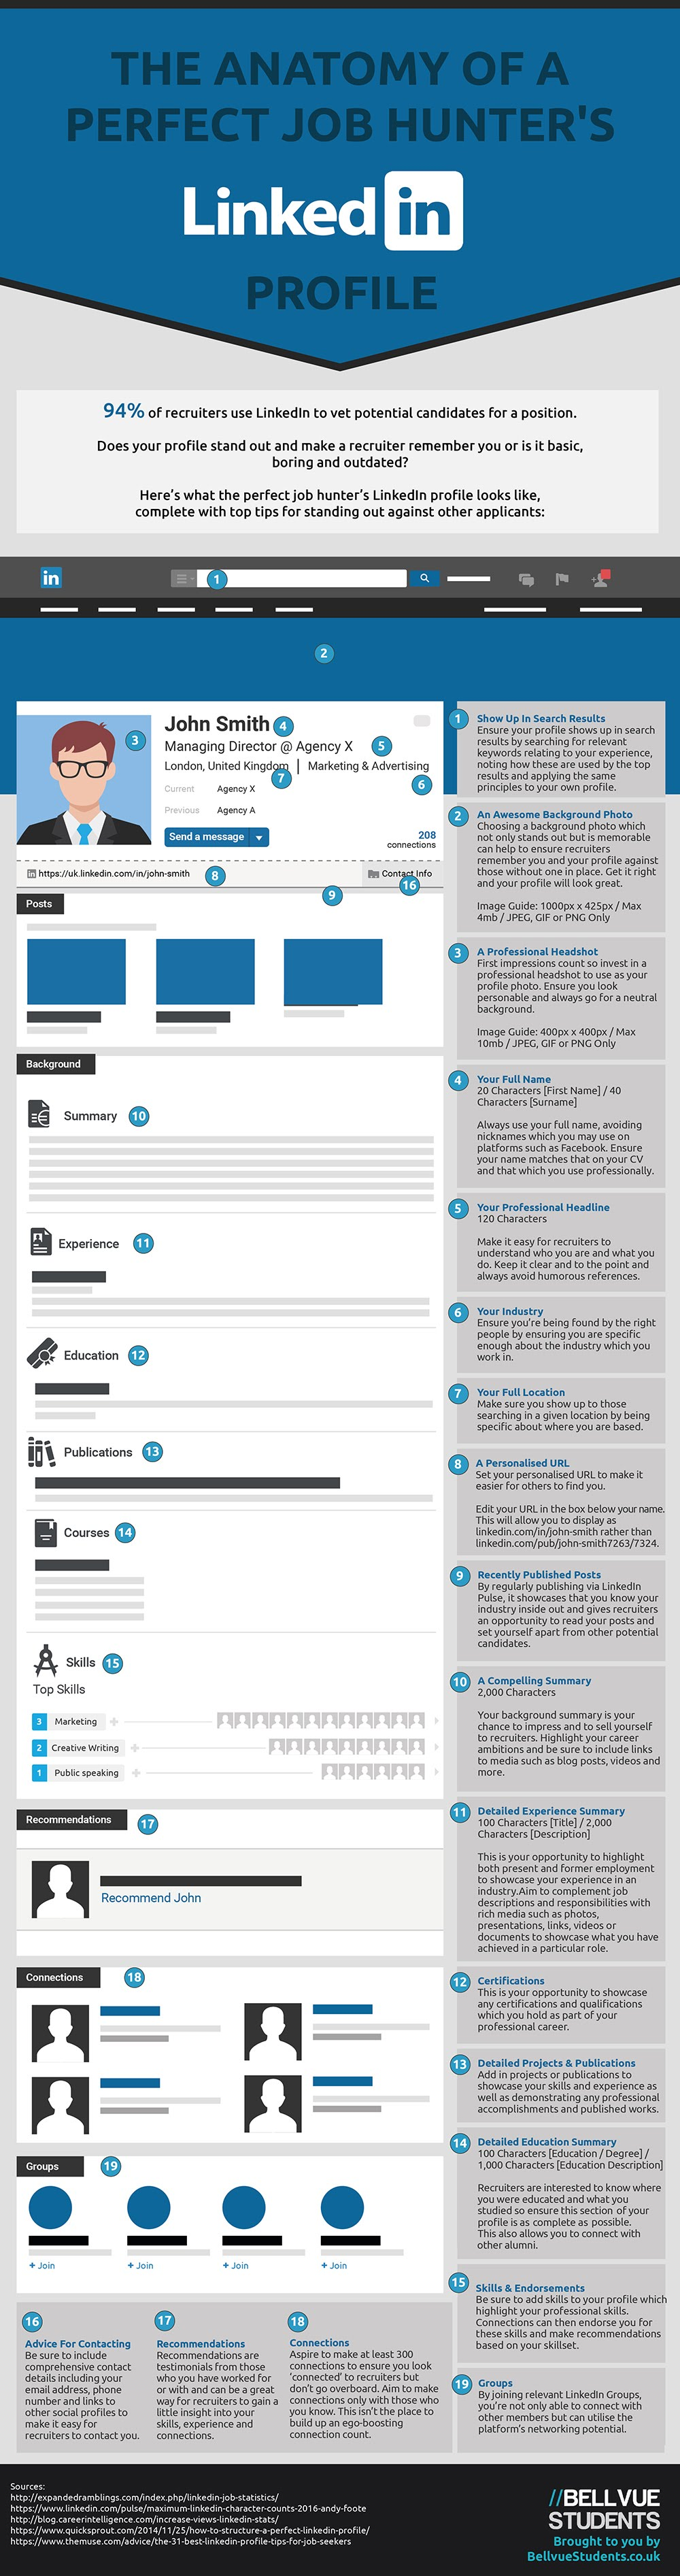 The Anatomy of a Perfect Job Hunters' LinkedIn Profile [Infographic]   Social Media Today